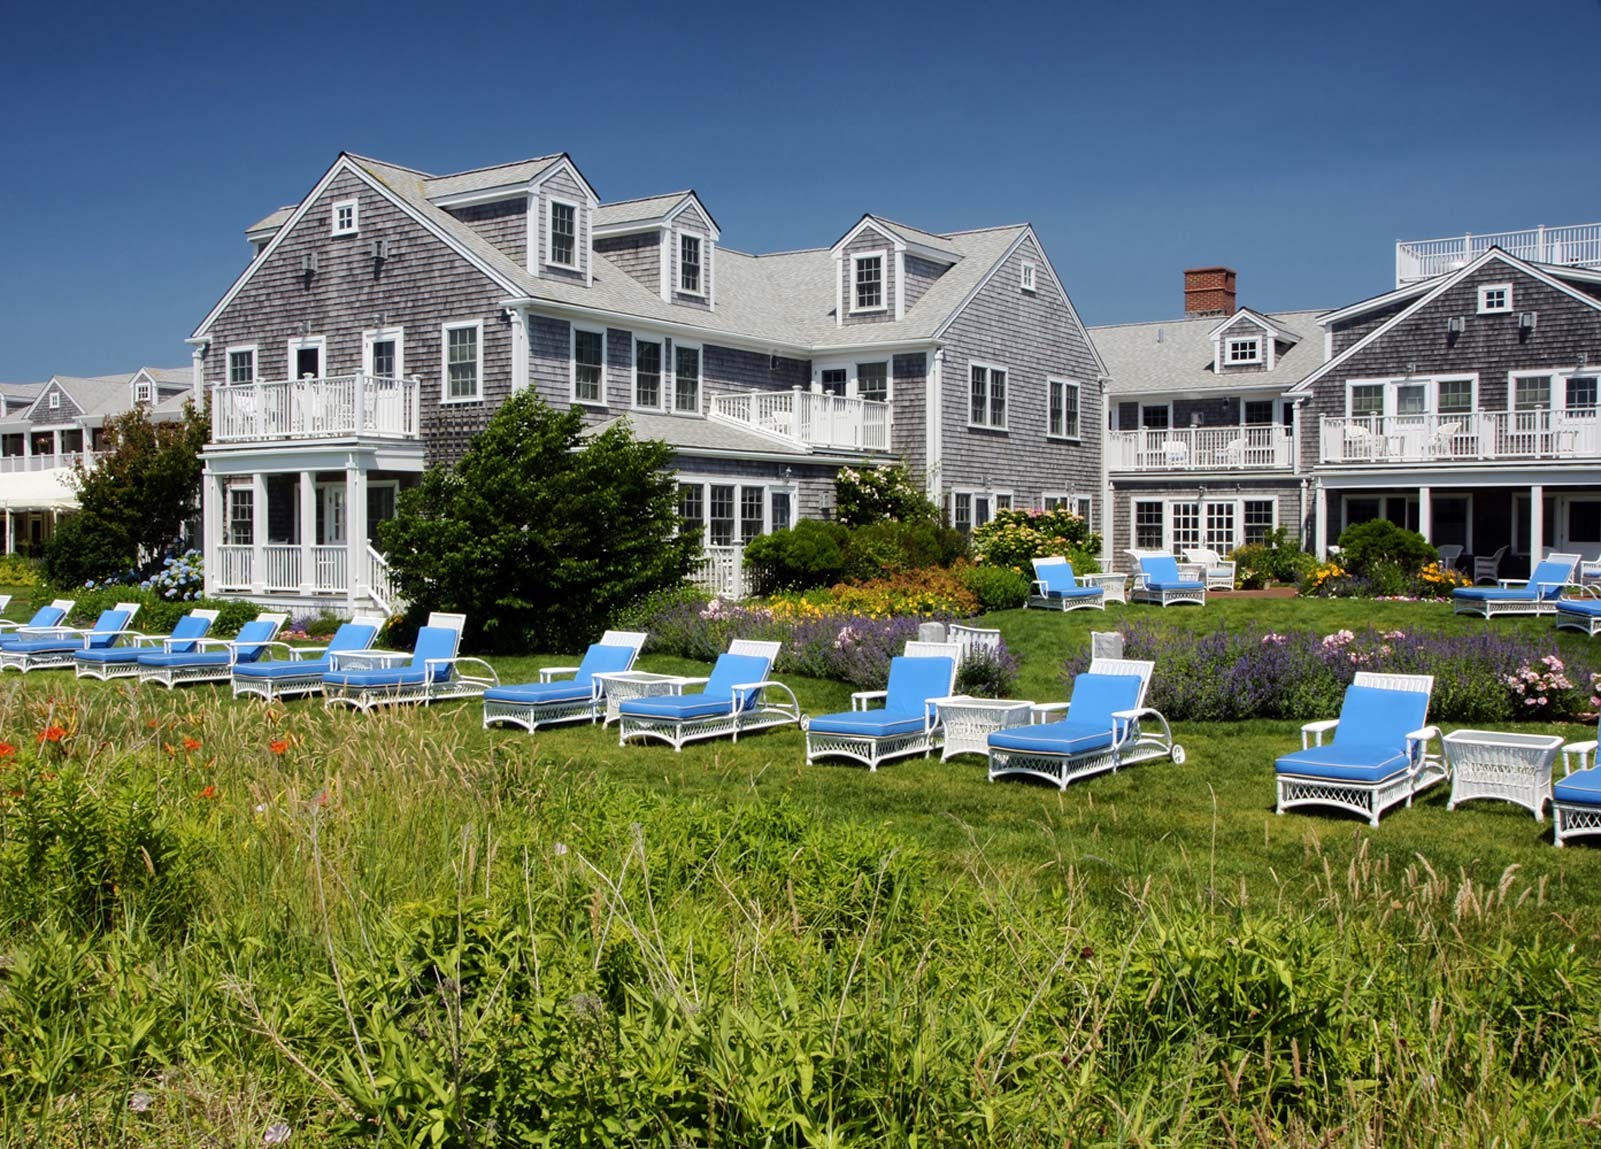 Hotels in Nantucket